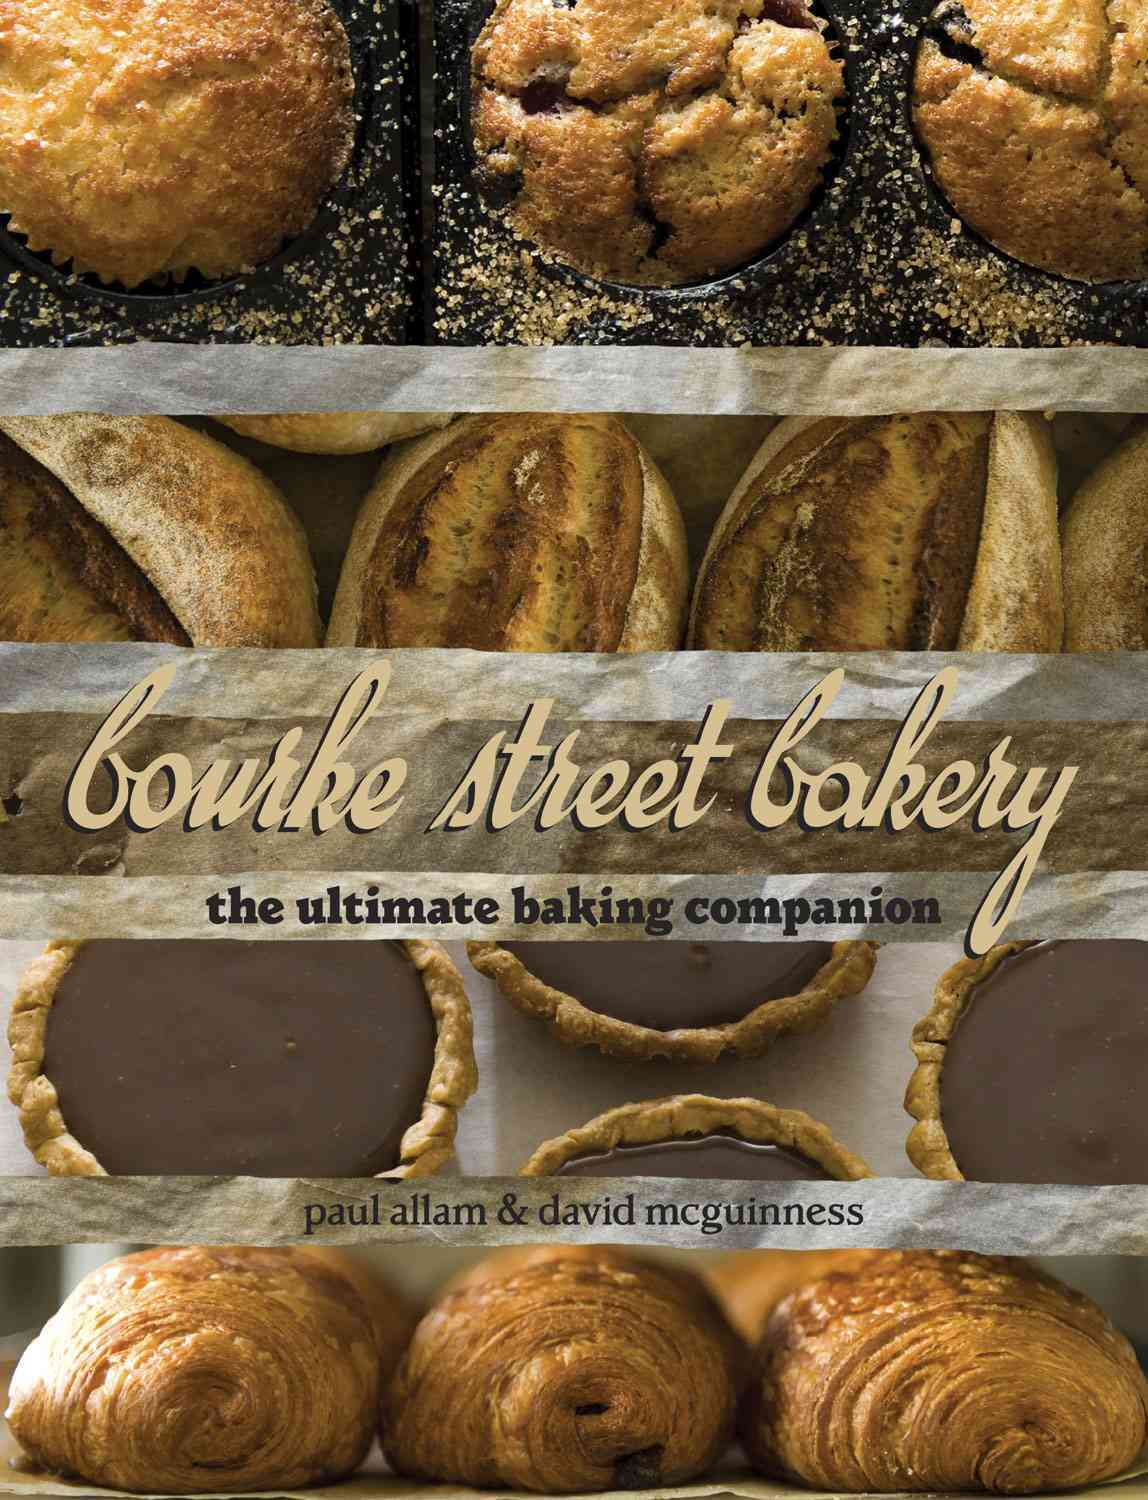 Bourke Street Bakery: The Ultimate Baking Companion (Hardcover)